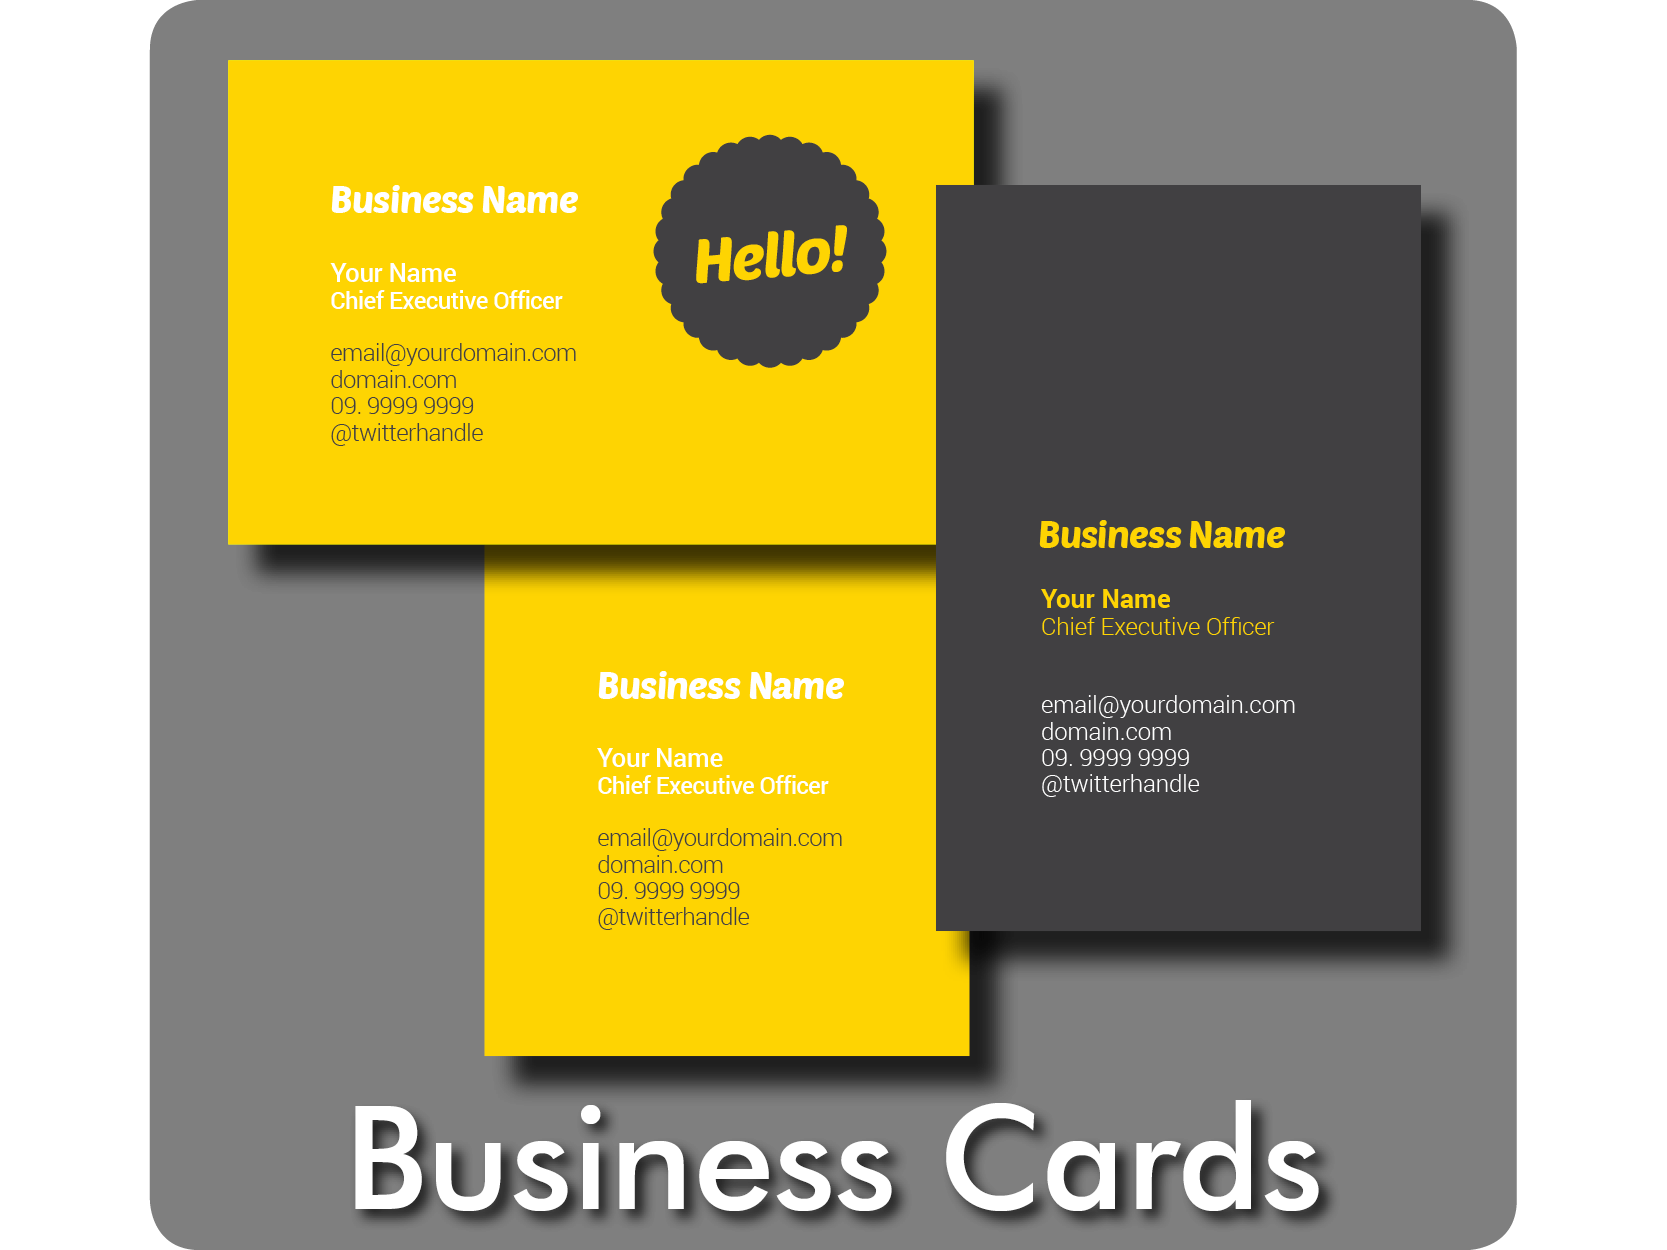 Business Cards, Dunedin Print, 297 Vogel Street, Dunedin4